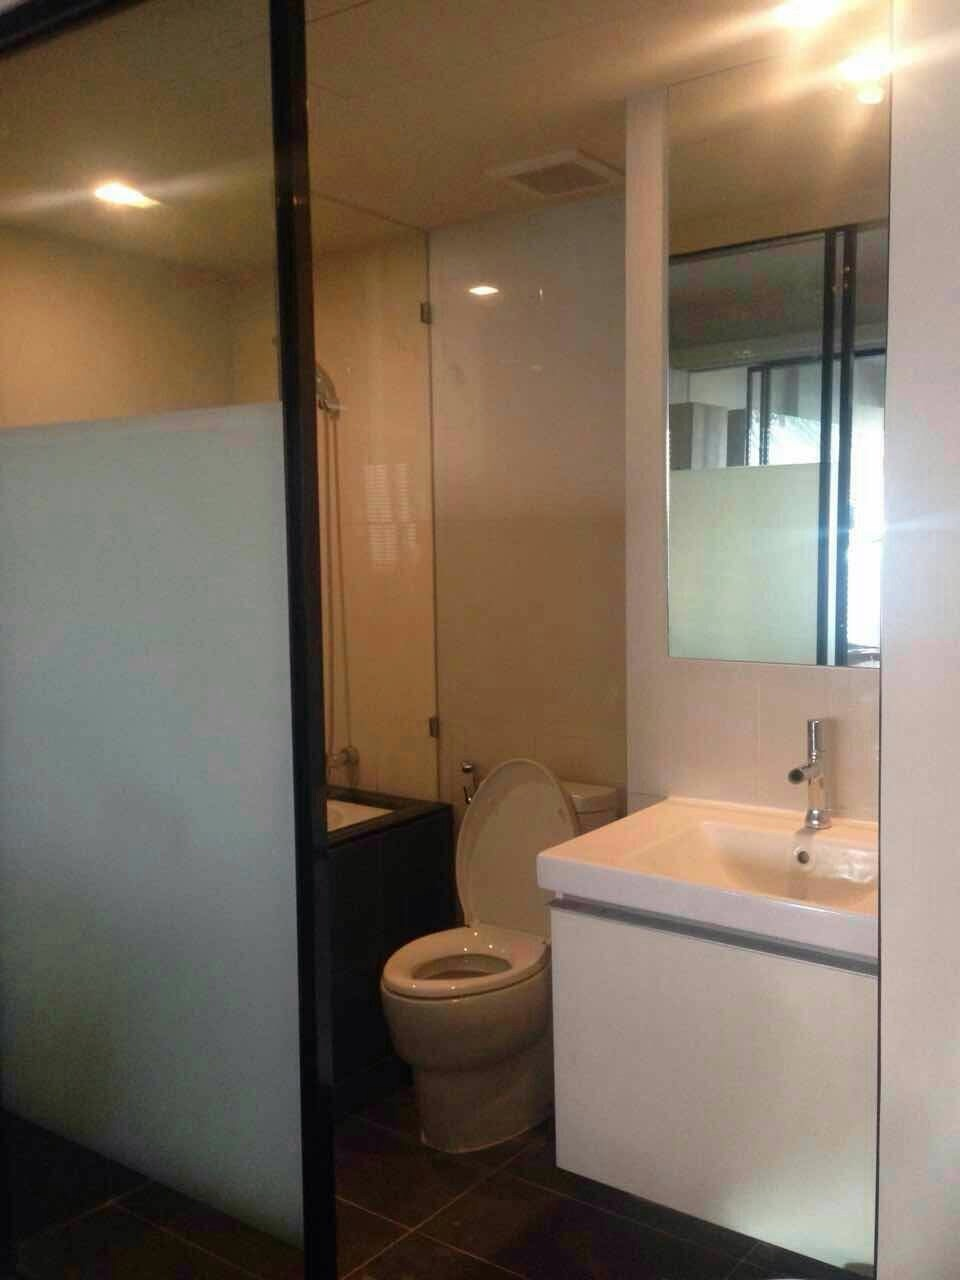 RE/MAX All Star Realty Agency's One Bedder (42sqm) at Circle S for Rent – walk to BTS Asoke or Nana 10